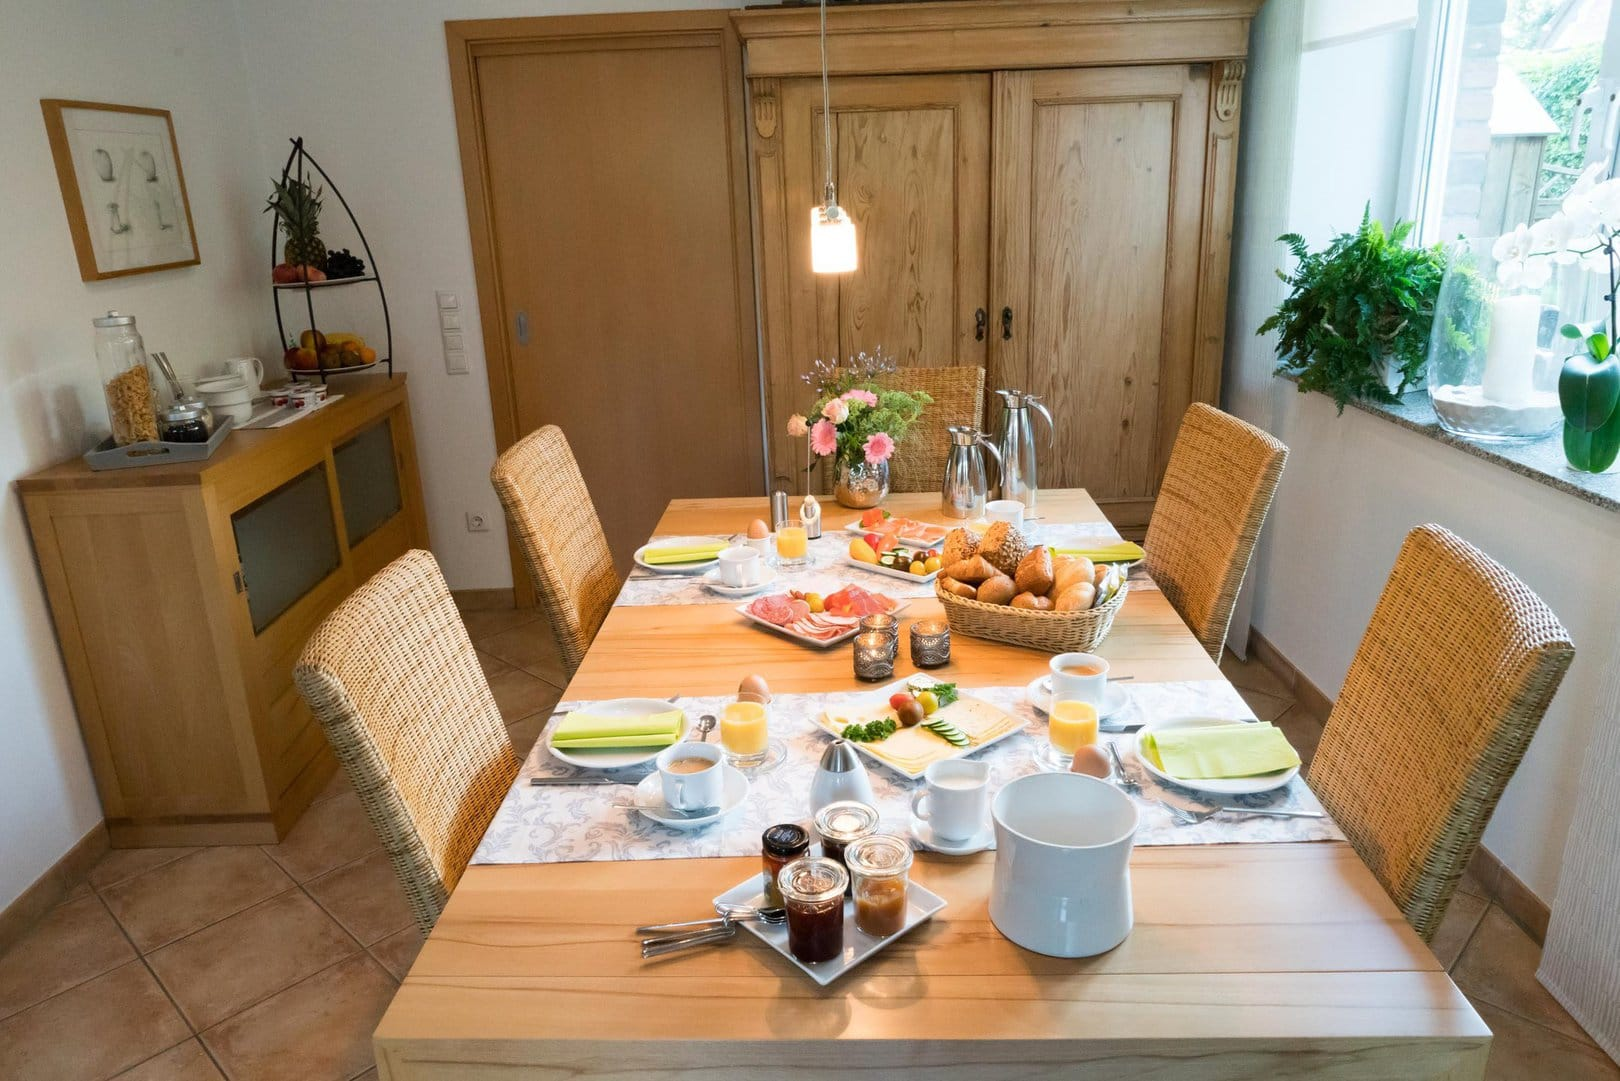 A wooden table set for four people with a selection of breads, meat and cheese, as well as various jams, yoghurts and coffee. The table stands in a bright room. In the background you can see chest of drawers which is set with mueslis and fruits.